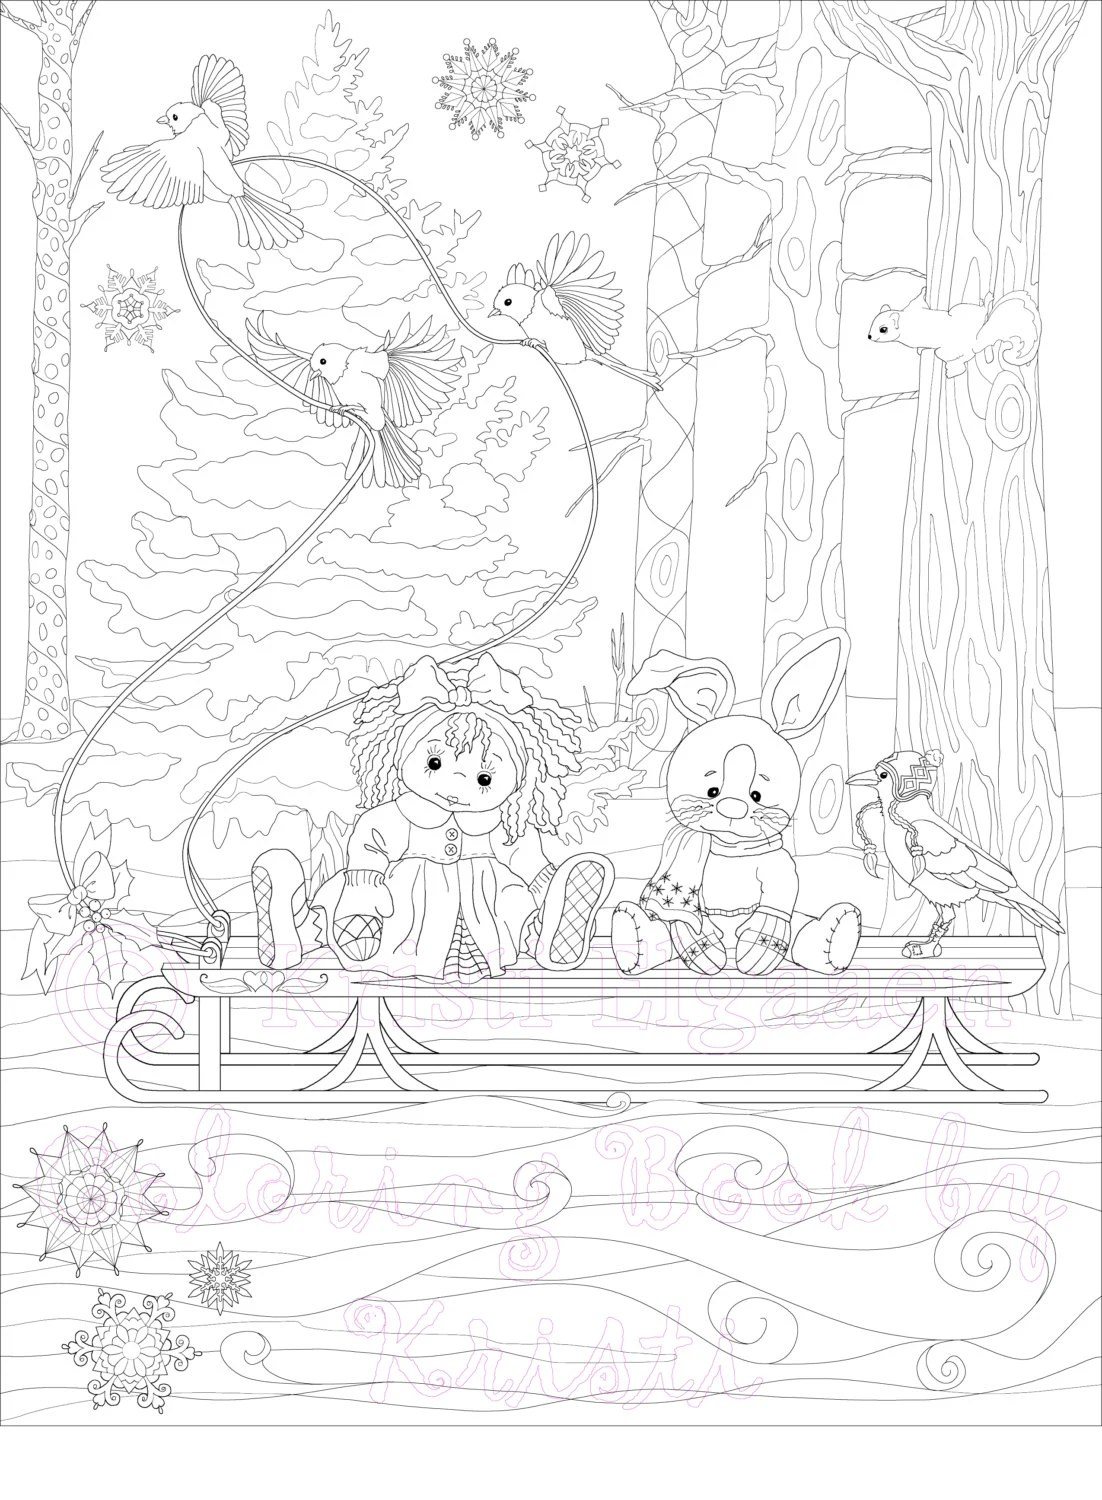 Little Witches and Wild Things Adult Coloring Page